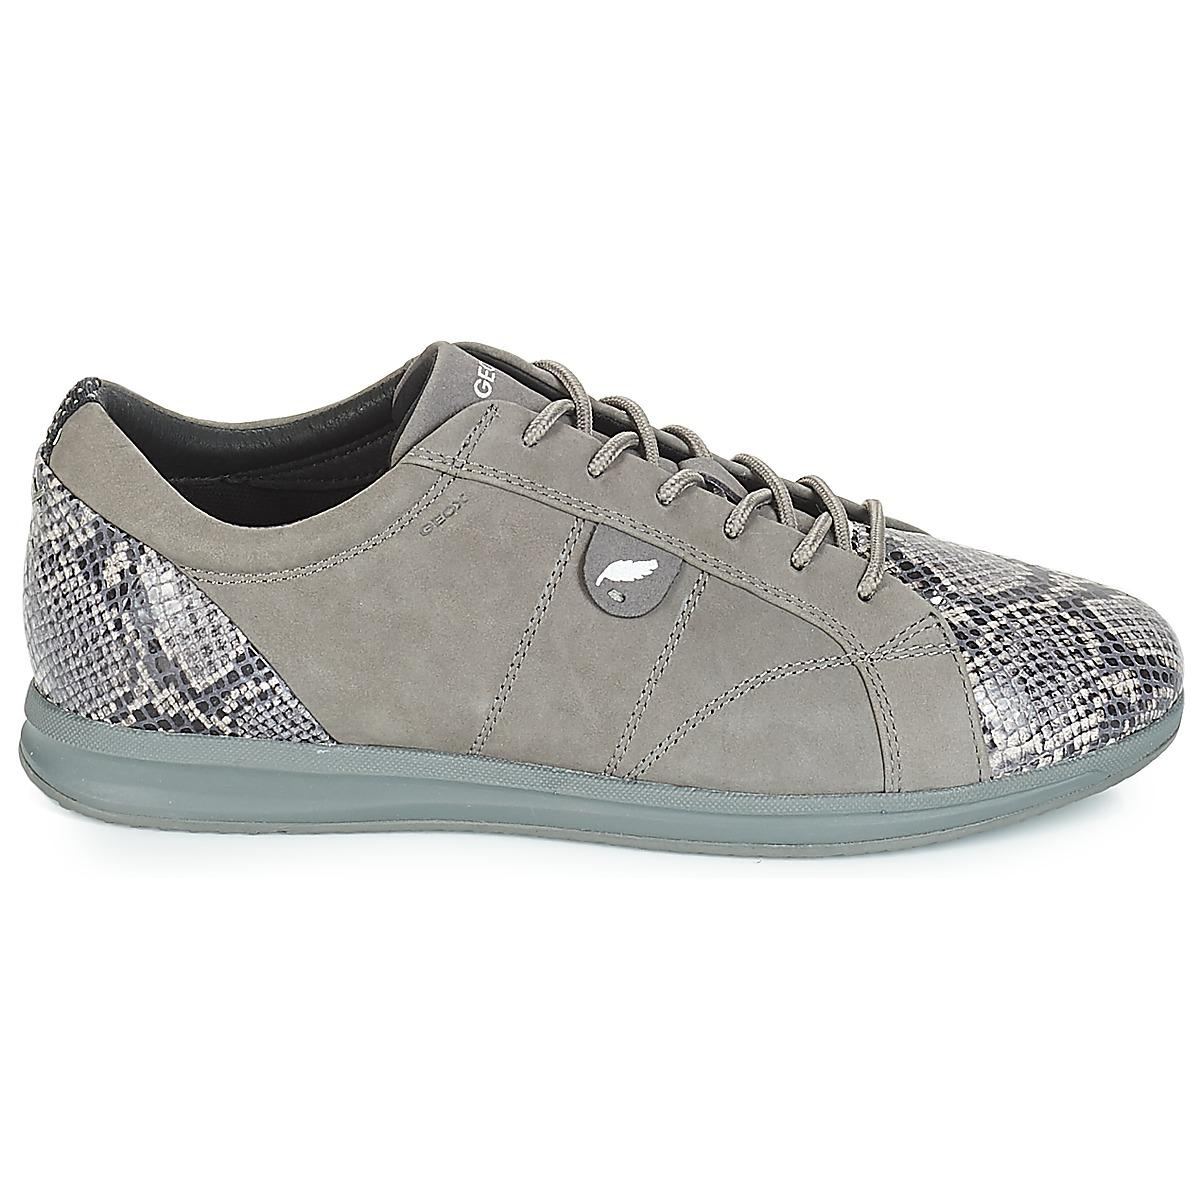 75190e54c2 In trainers in Geox Lyst D Avery Grey Gray Women's Shoes g0gXqIR